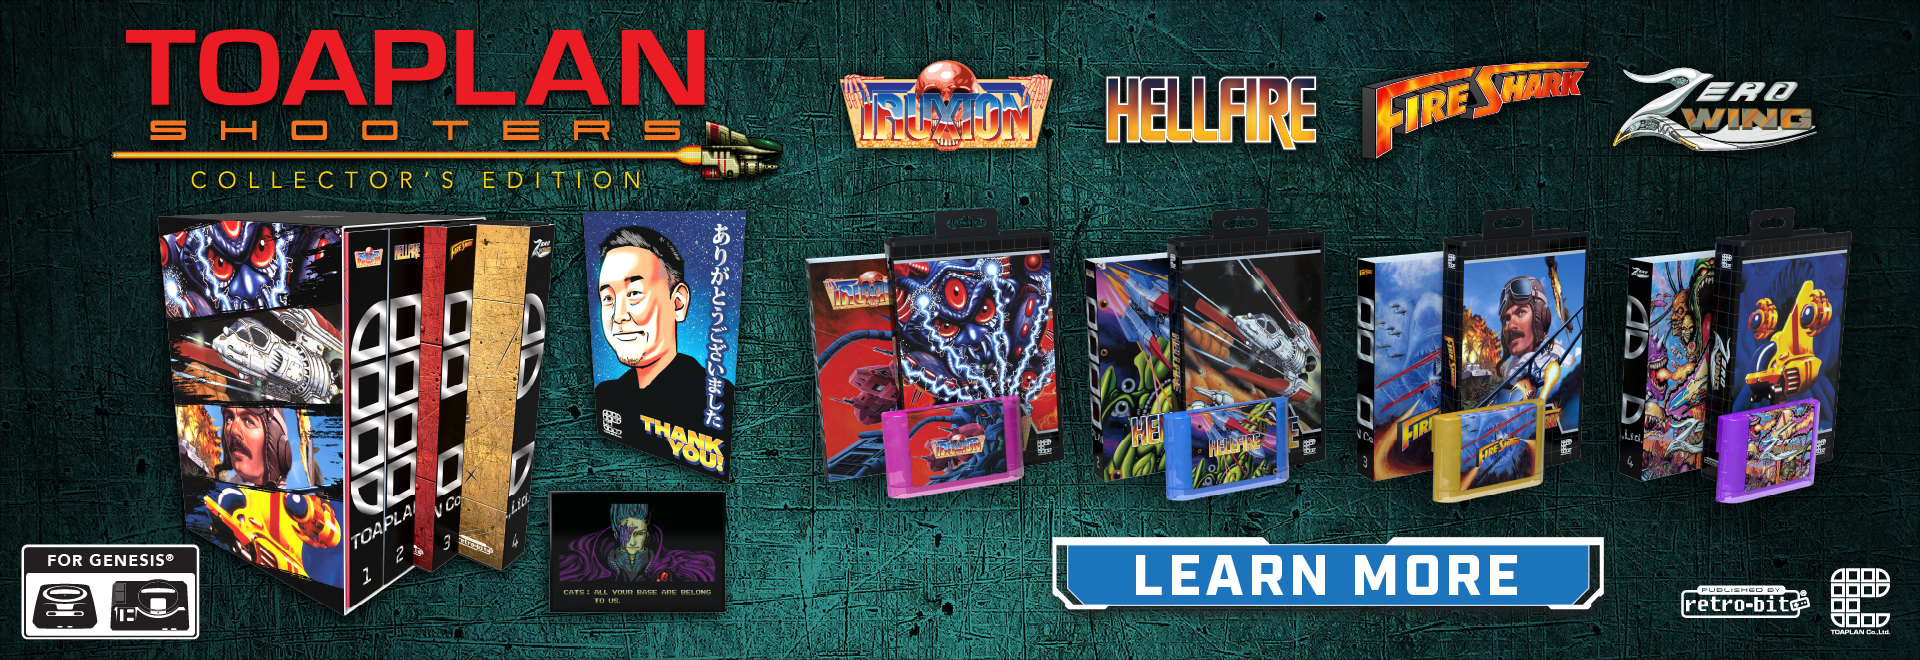 Pre-Order your Toaplan Shooters Collector's Editions!